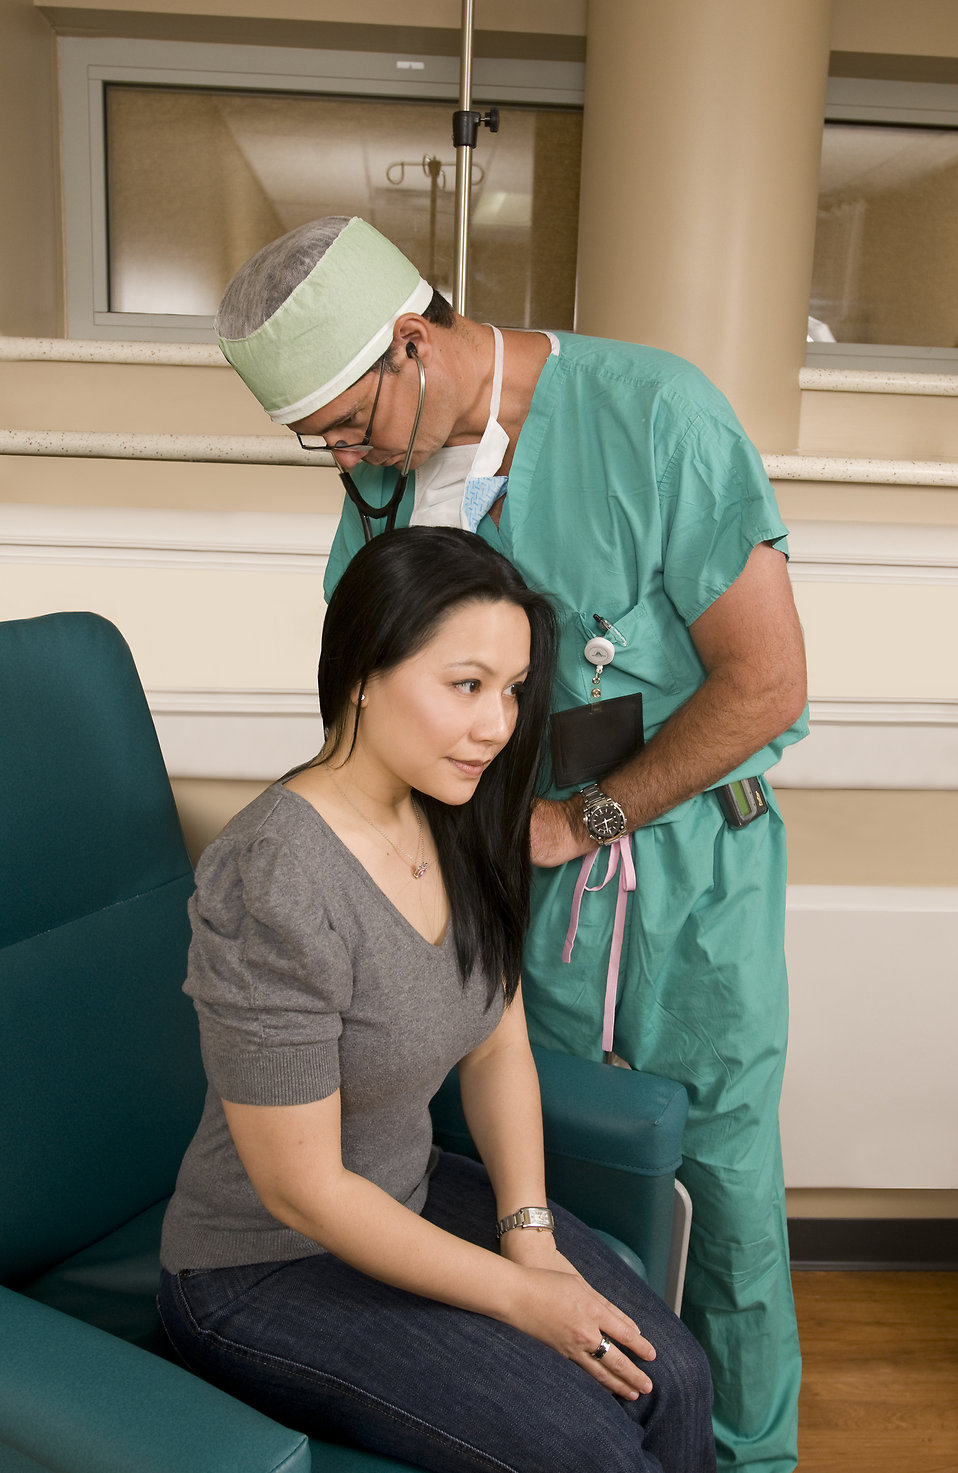 A doctor examining a female patient : Free Stock Photo